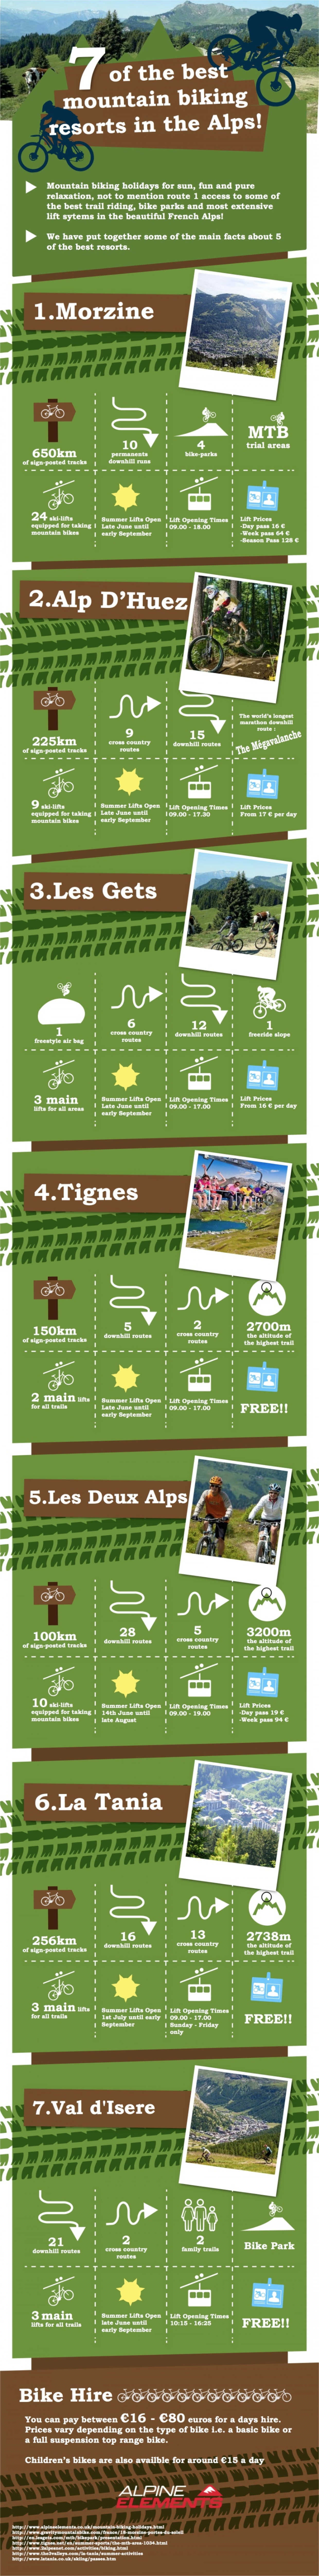 7 of the Best Mountain Biking Resorts in the Alps Infographic